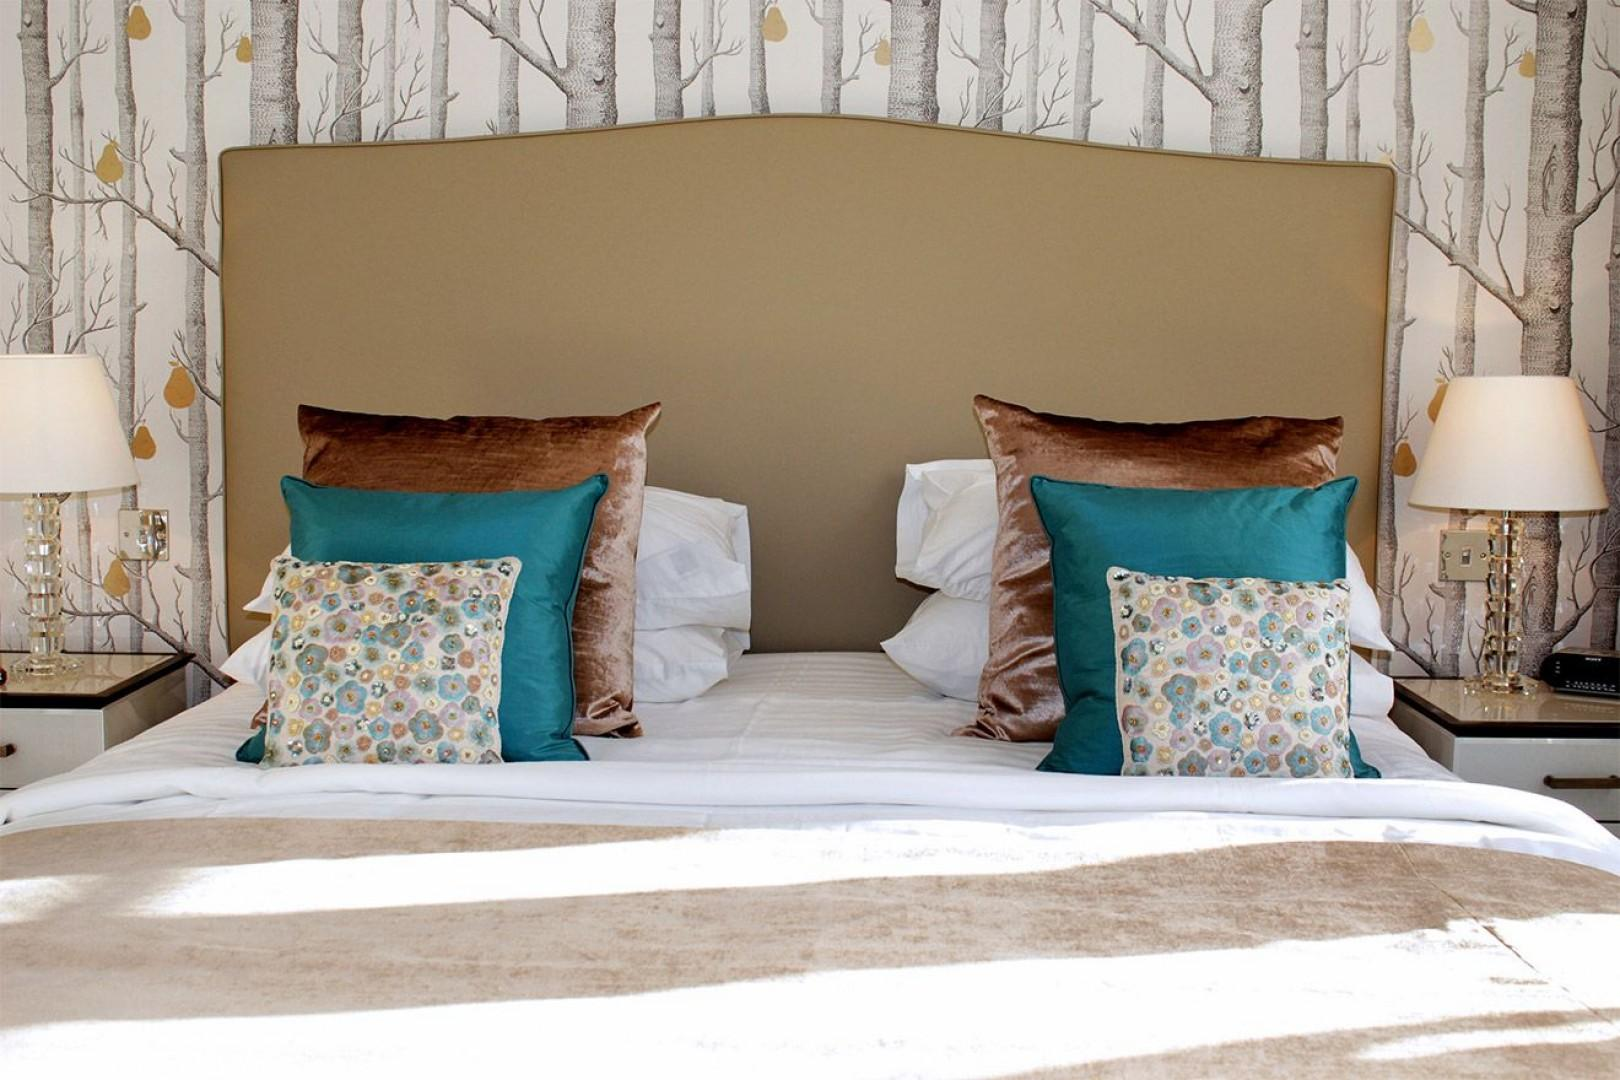 Lovely linens and throw pillows